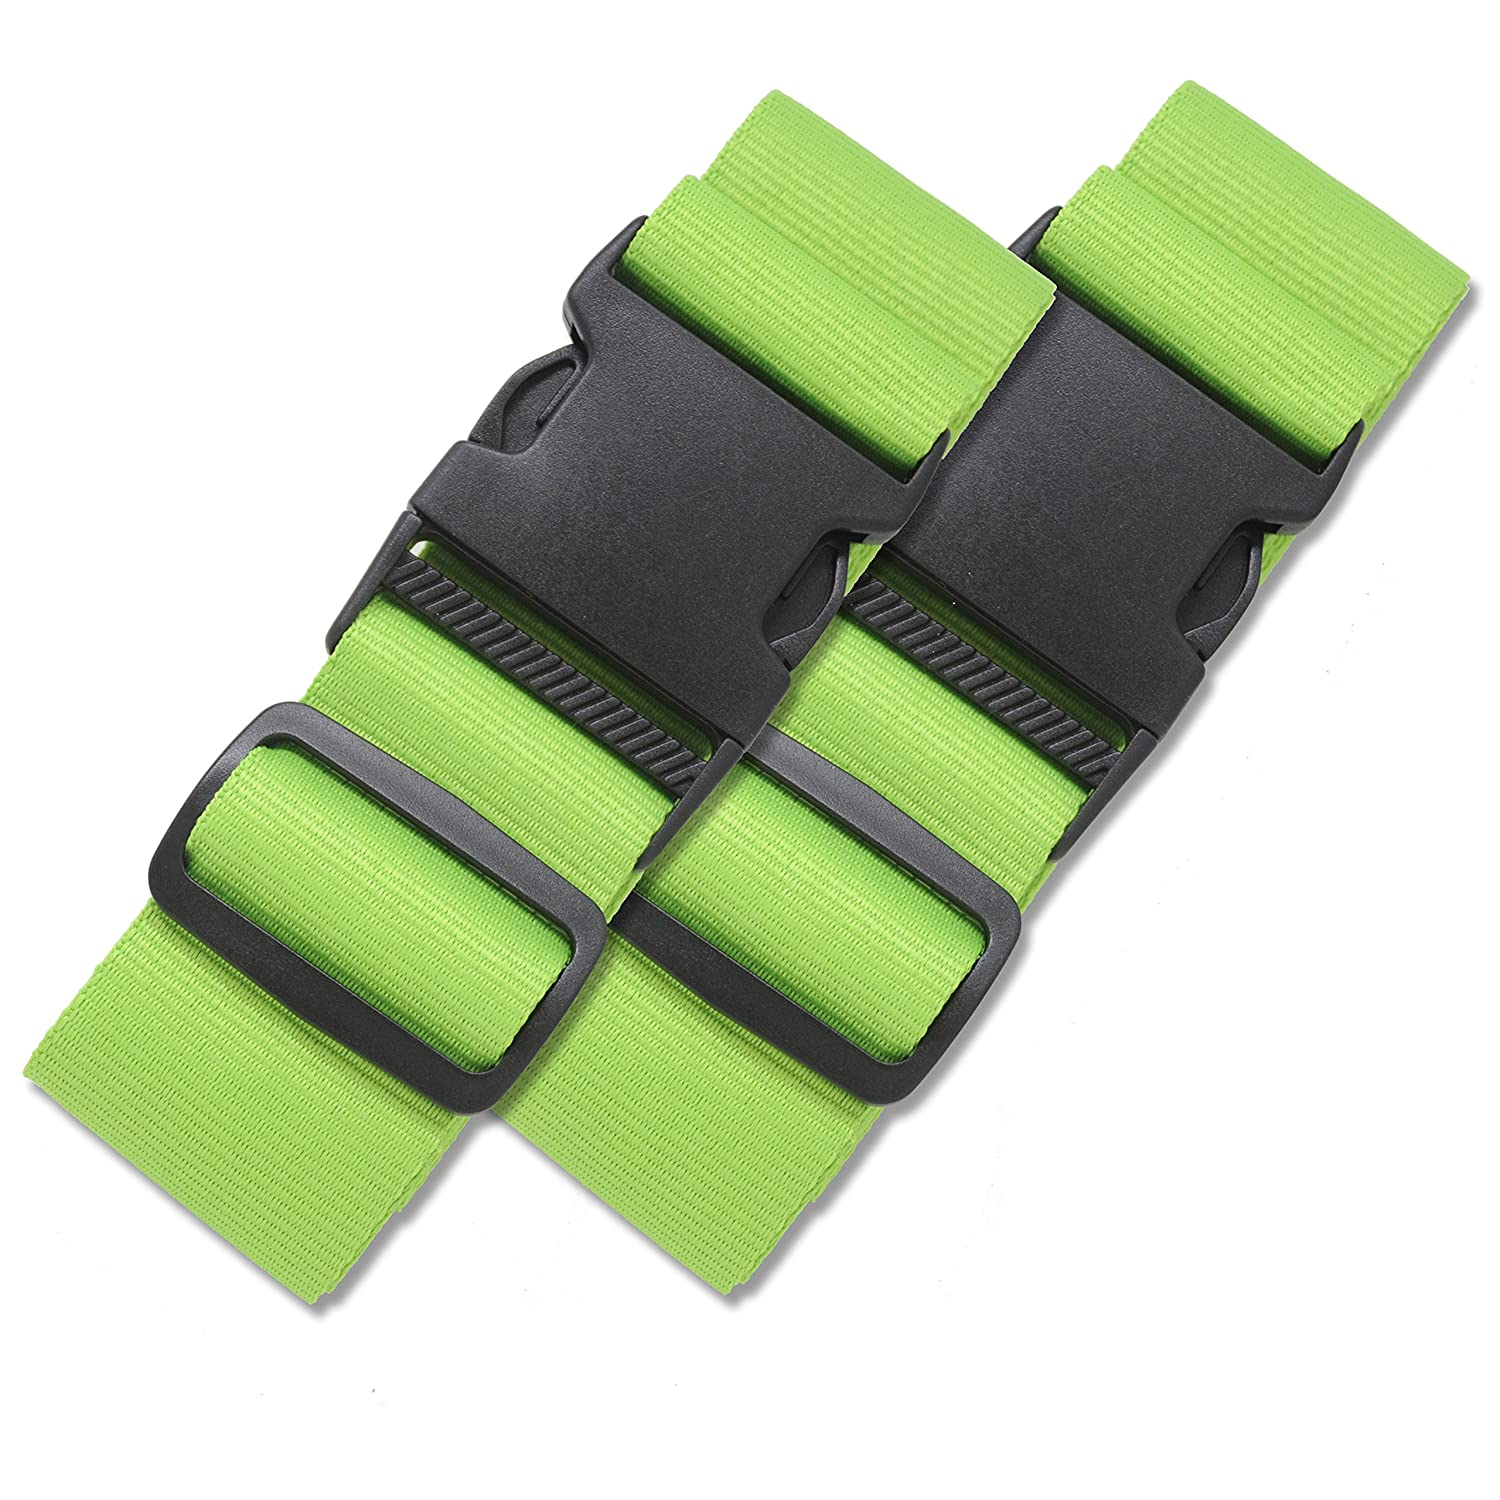 2 Pack Luggage Straps Set Suitcase Belts Bold Blue Luggage Tags ID TSA Approved Luggage Strap Carry On Adjustable Security Straps